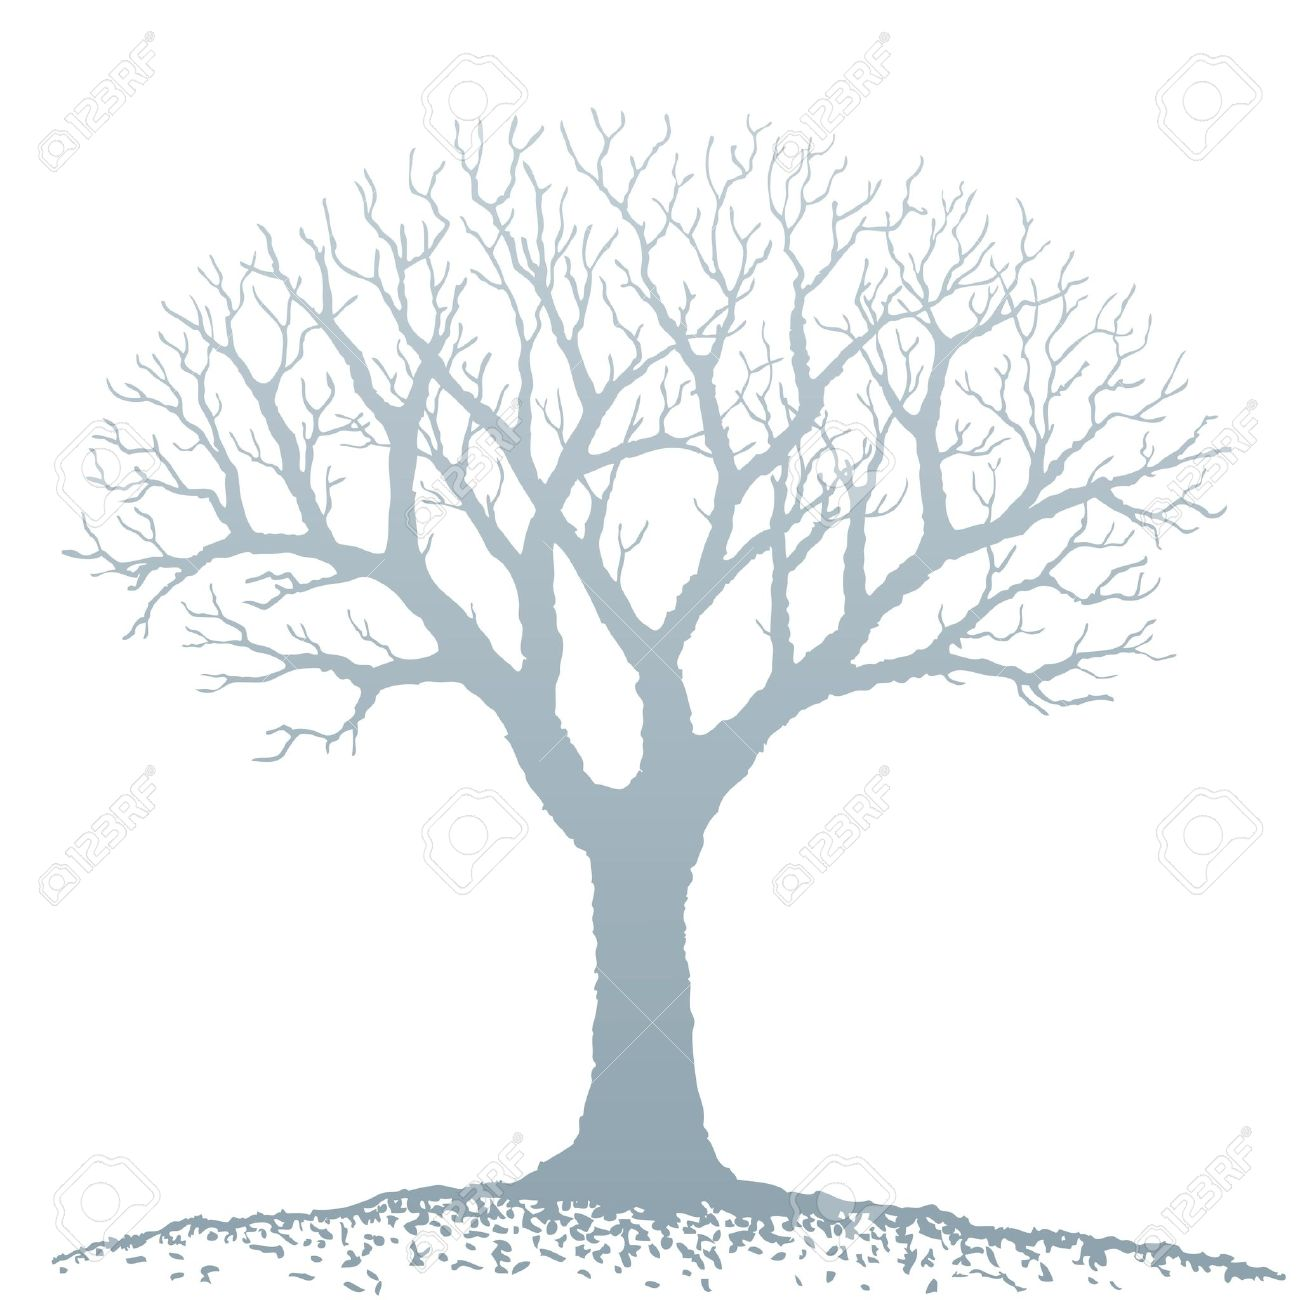 bare tree stock photos royalty free bare tree images and pictures